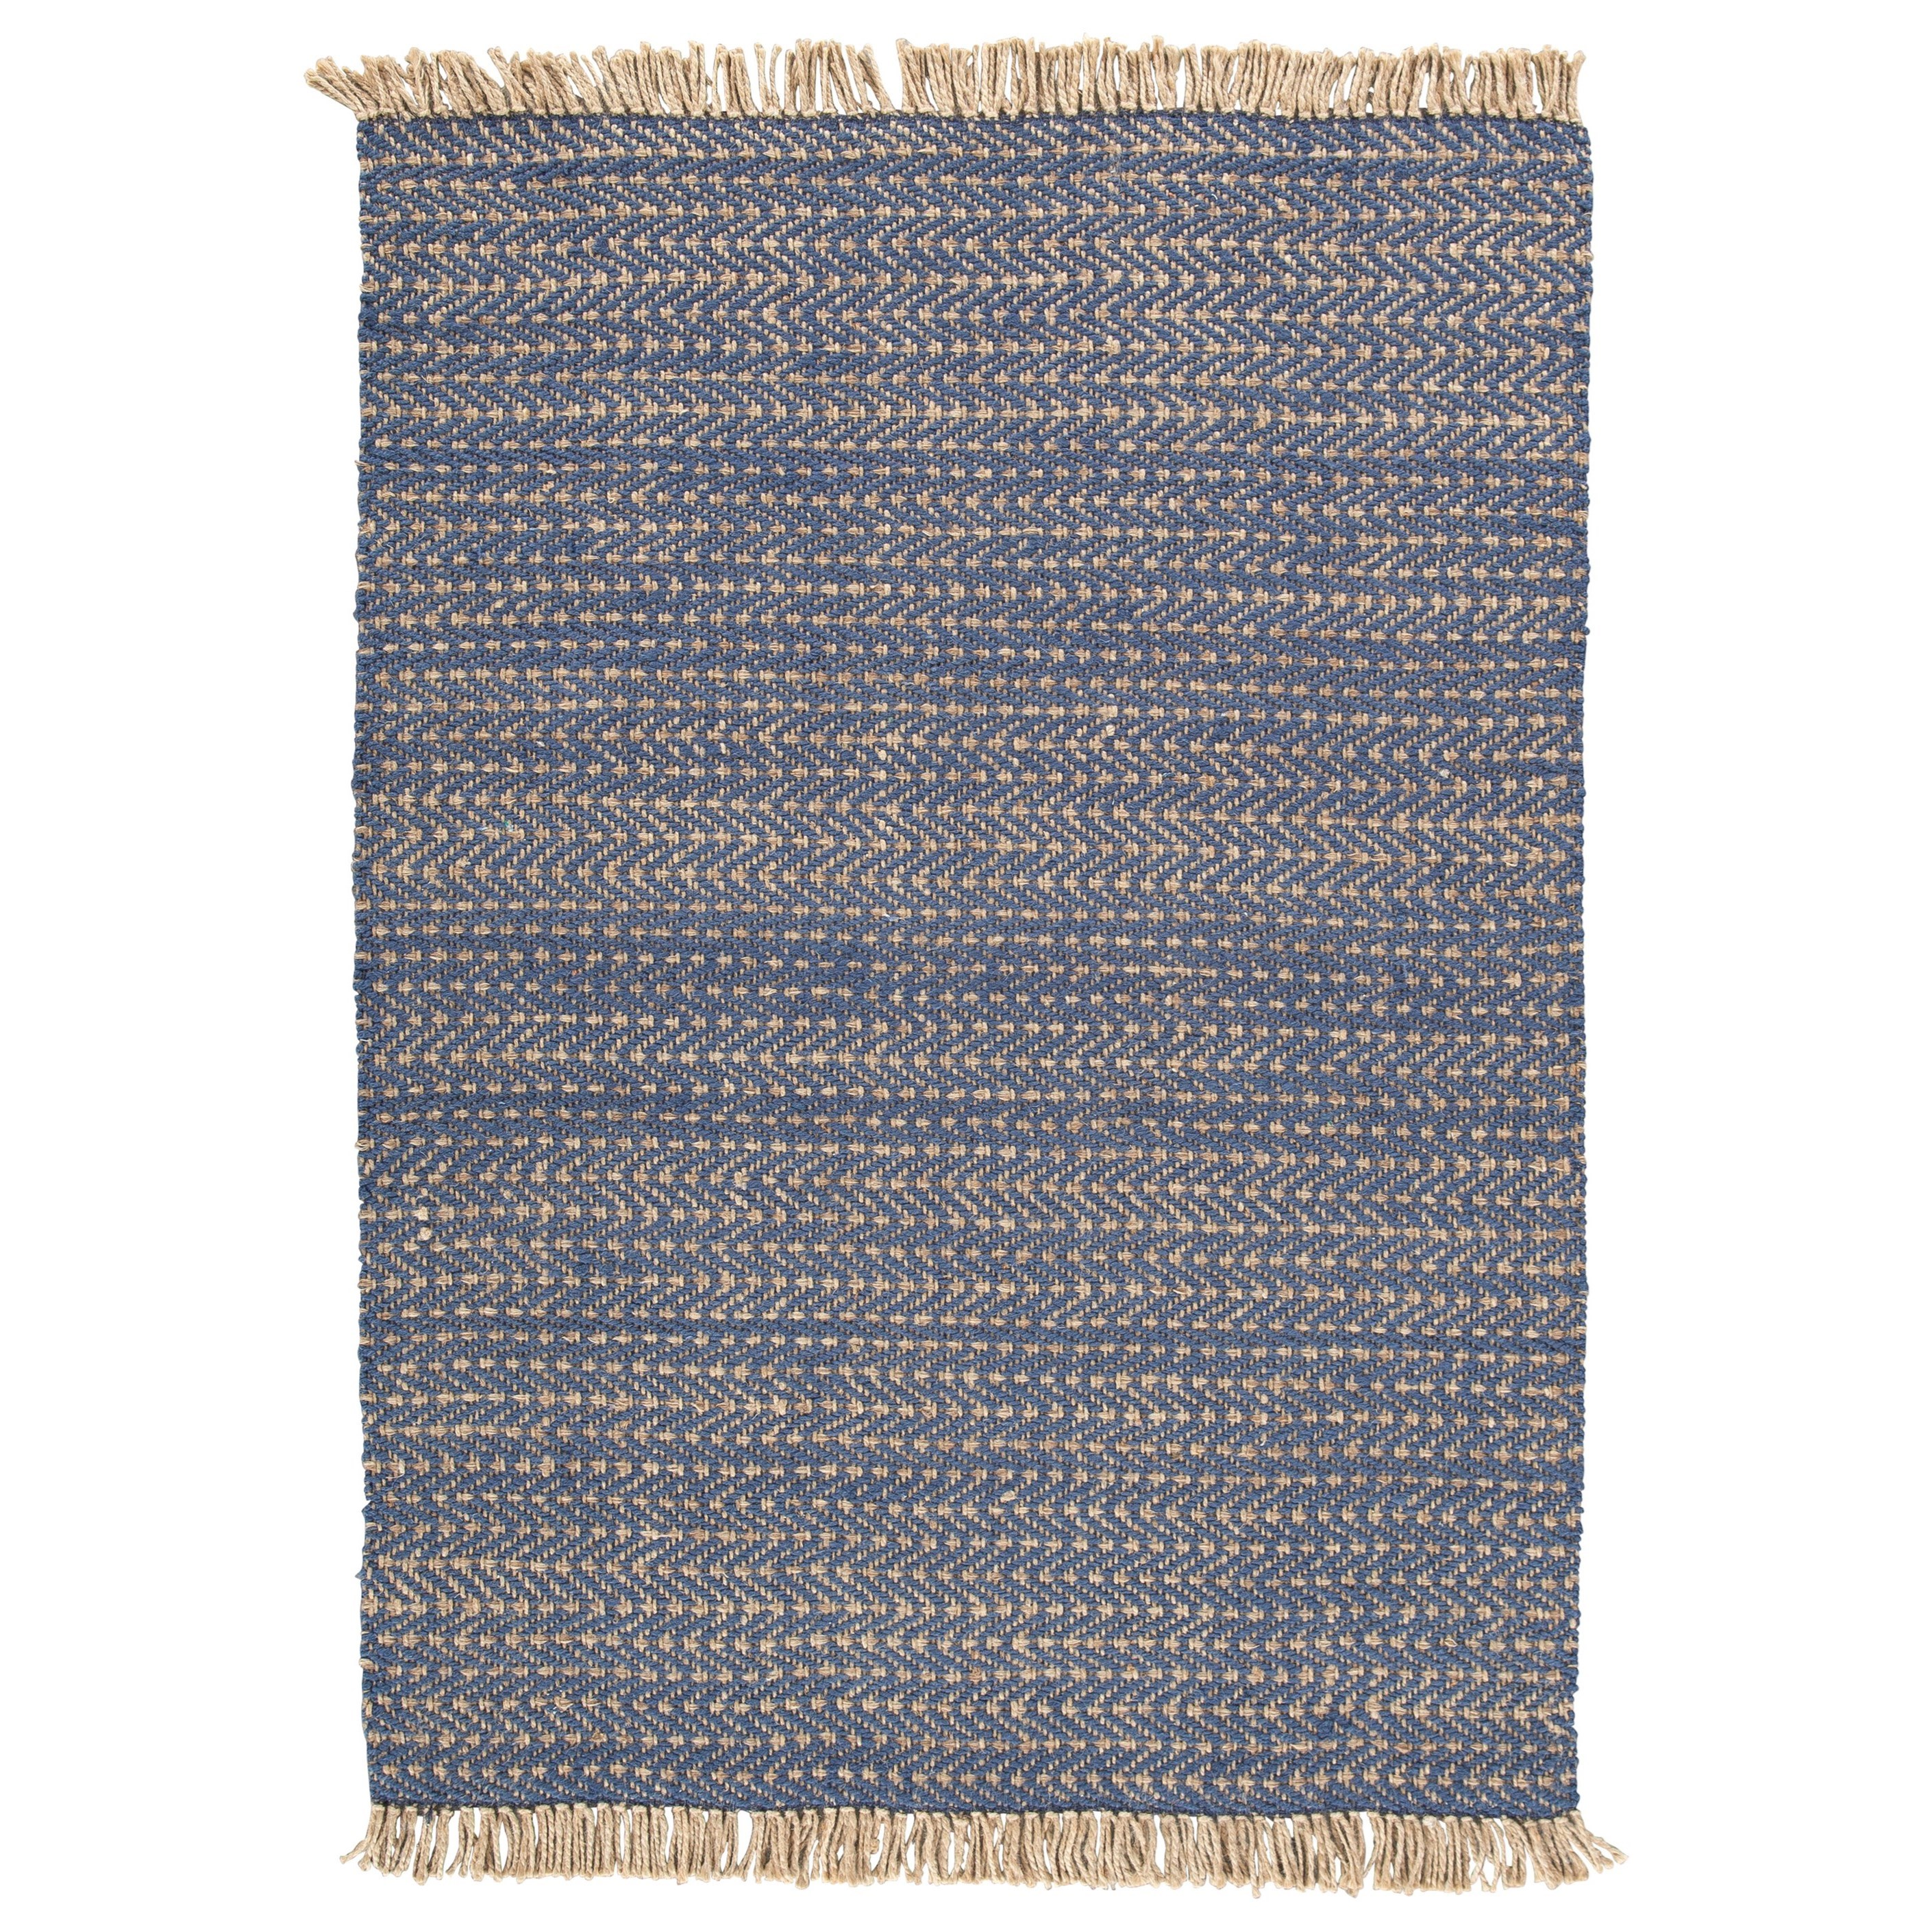 Casual Area Rugs Mavis Navy/Natural Medium Rug by Signature Design by Ashley at Coconis Furniture & Mattress 1st